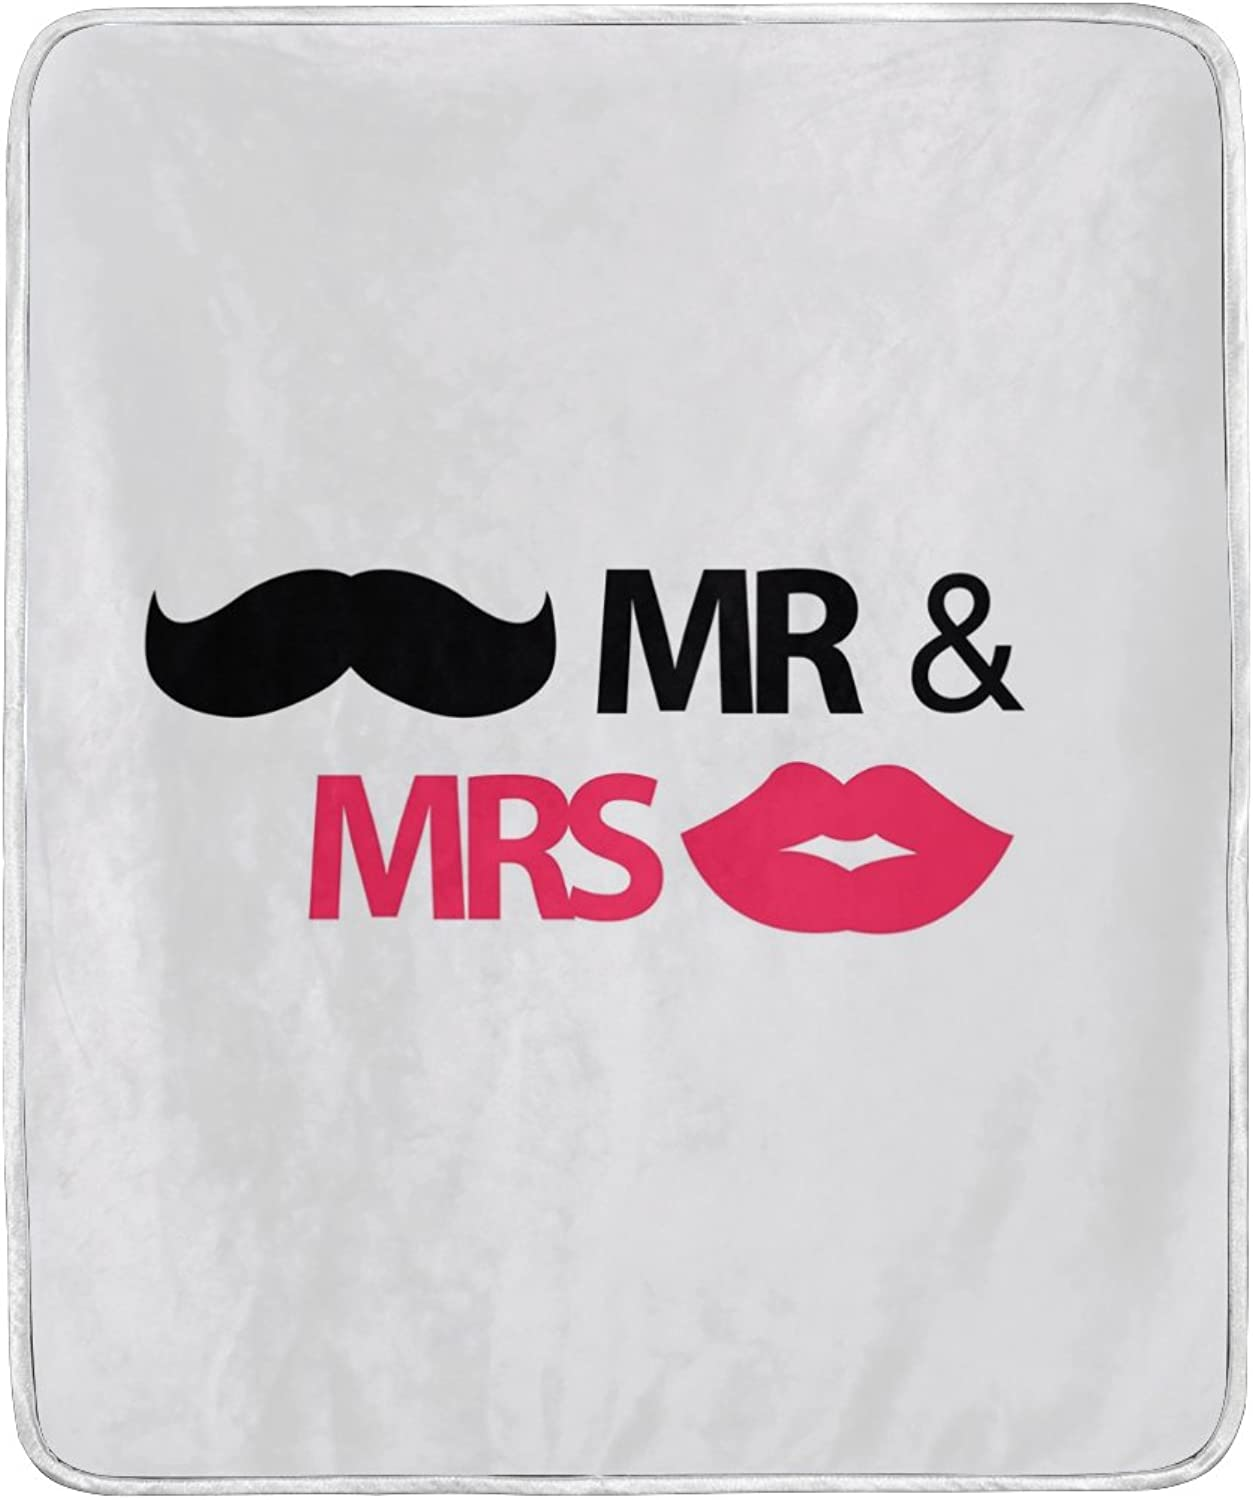 ALIREA Mr. and Mrs. with Mustache Lips Super Soft Warm Blanket Lightweight Throw Blankets for Bed Couch Sofa Travelling Camping 60 x 50 Inch for Kids Boys Girls